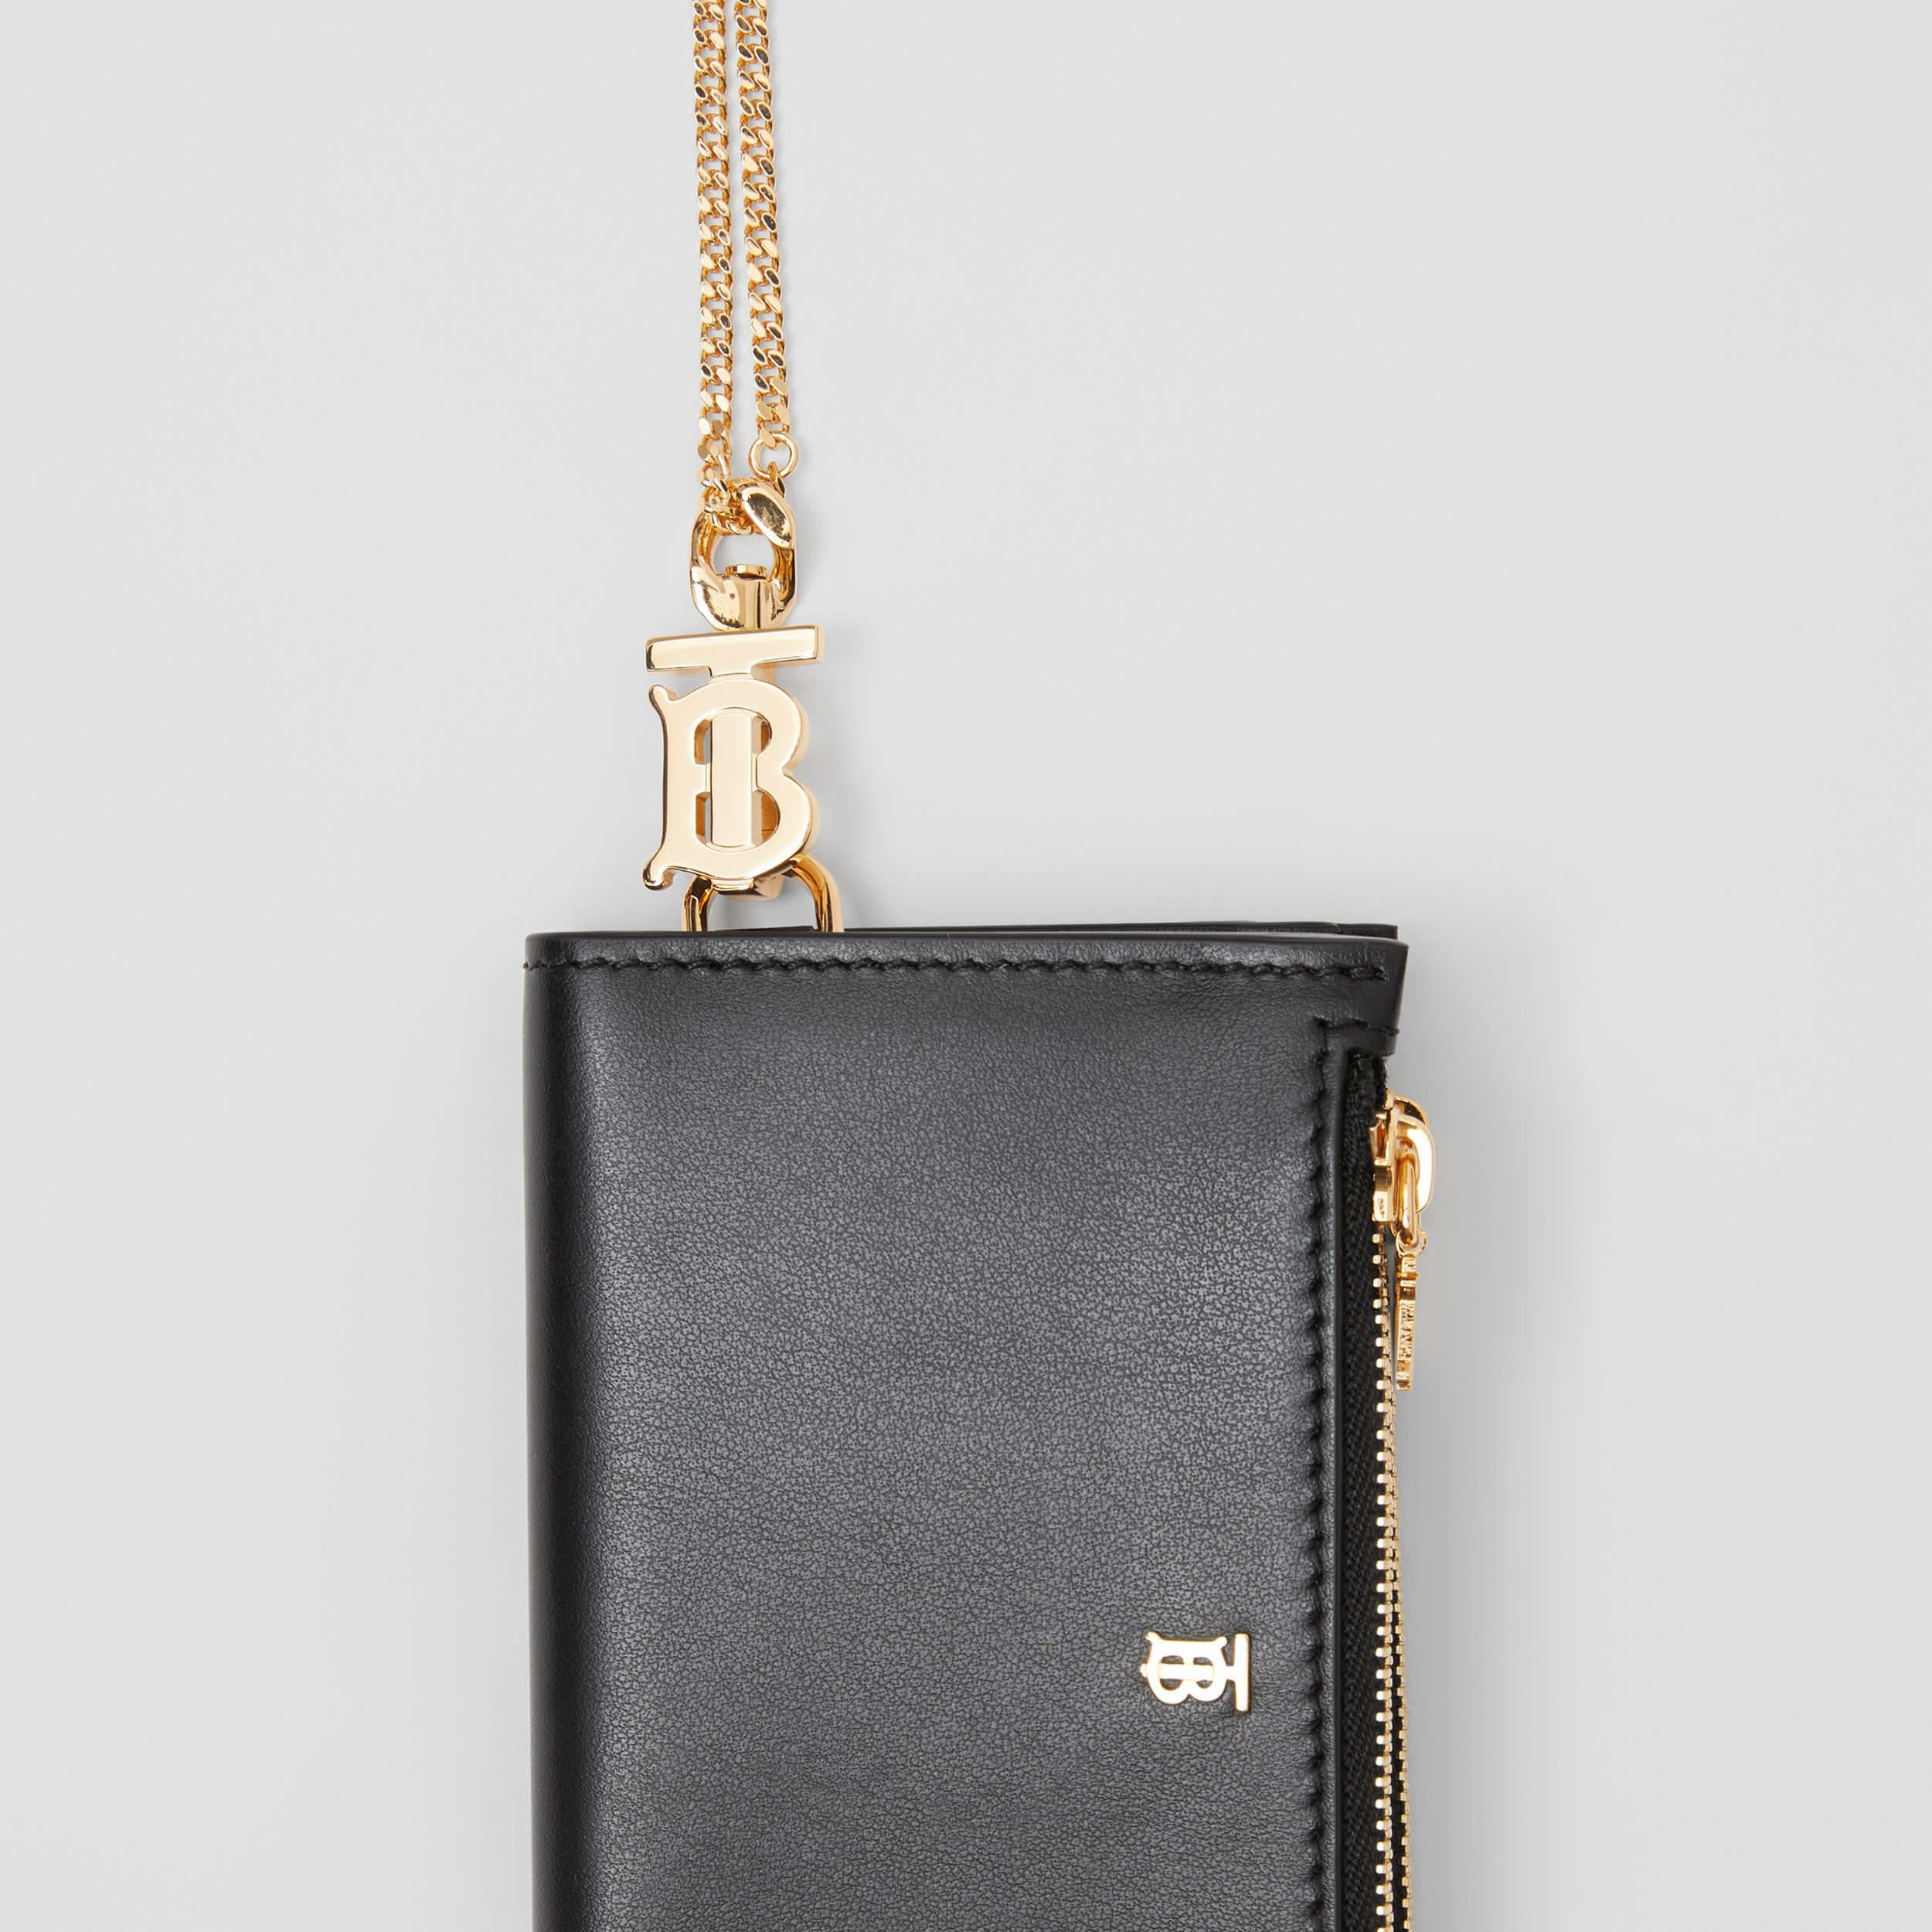 Monogram Motif Leather Wallet with Detachable Strap in Black - Women | Burberry - 2